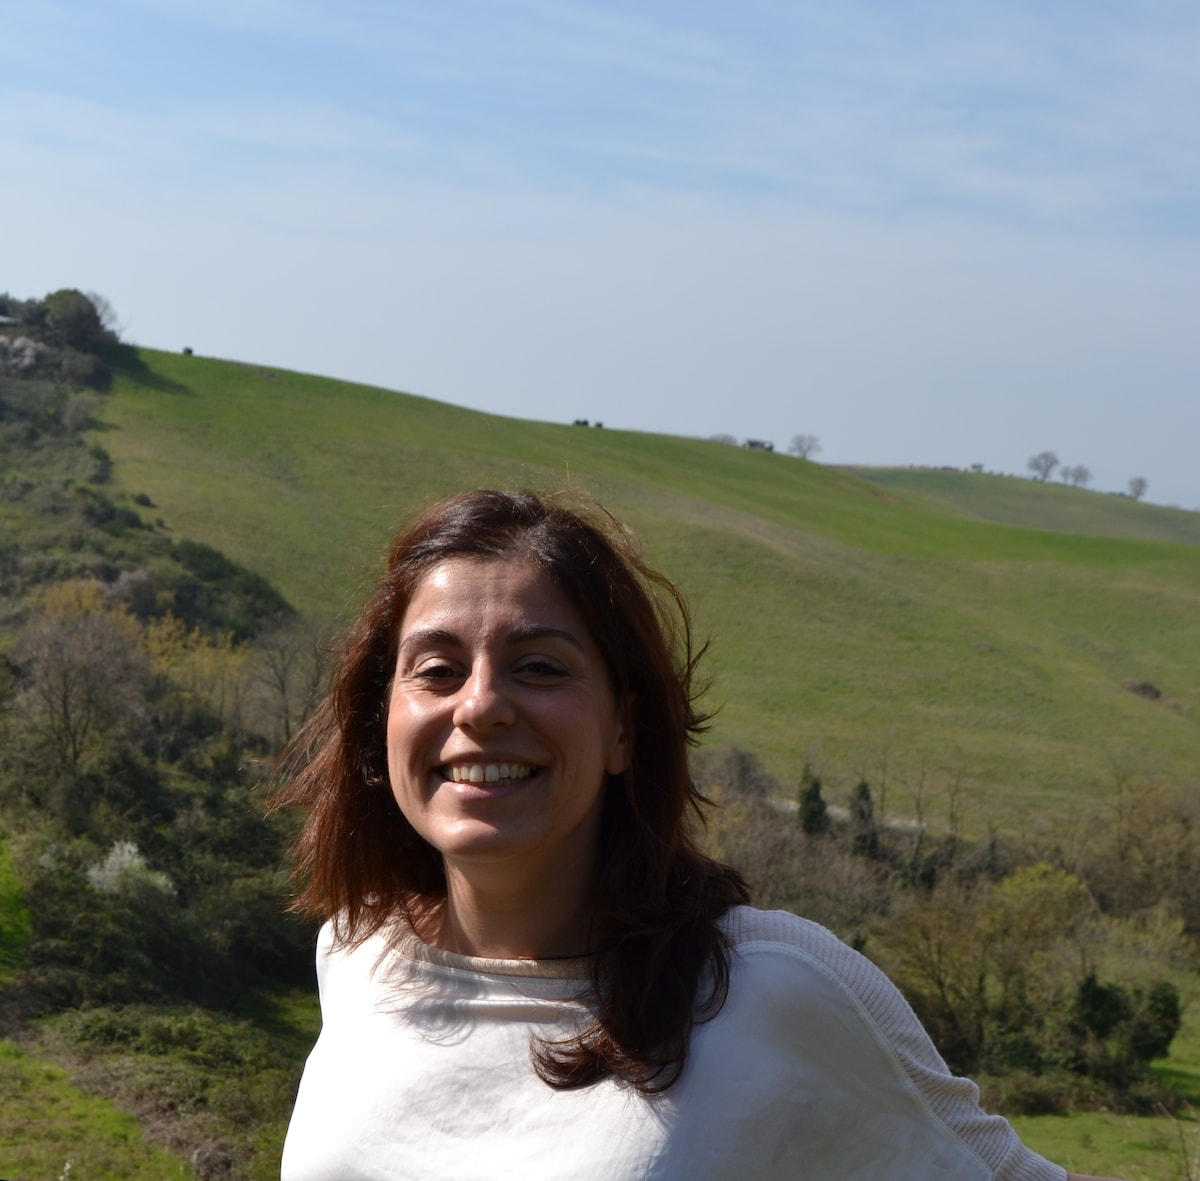 Ciao! 